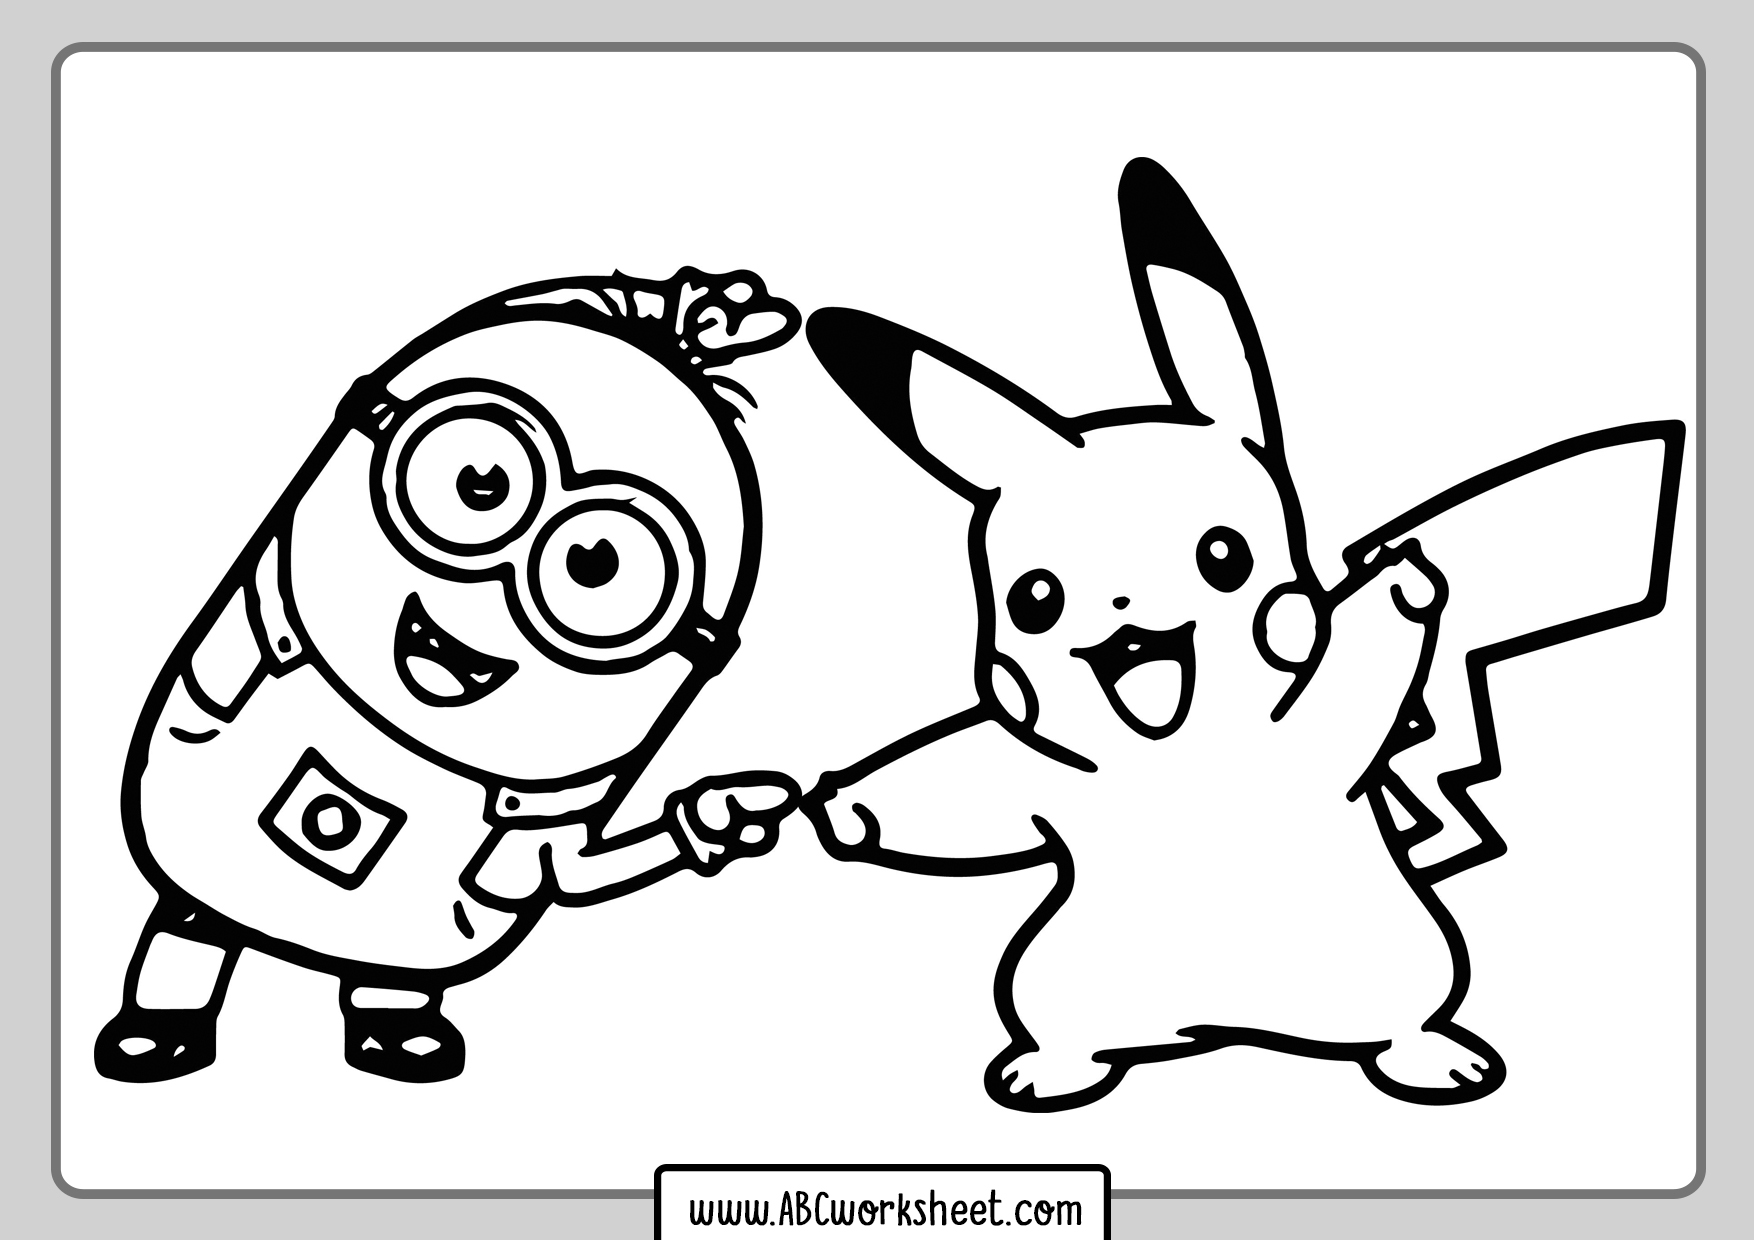 Minions Coloring Pages - ABC Worksheet